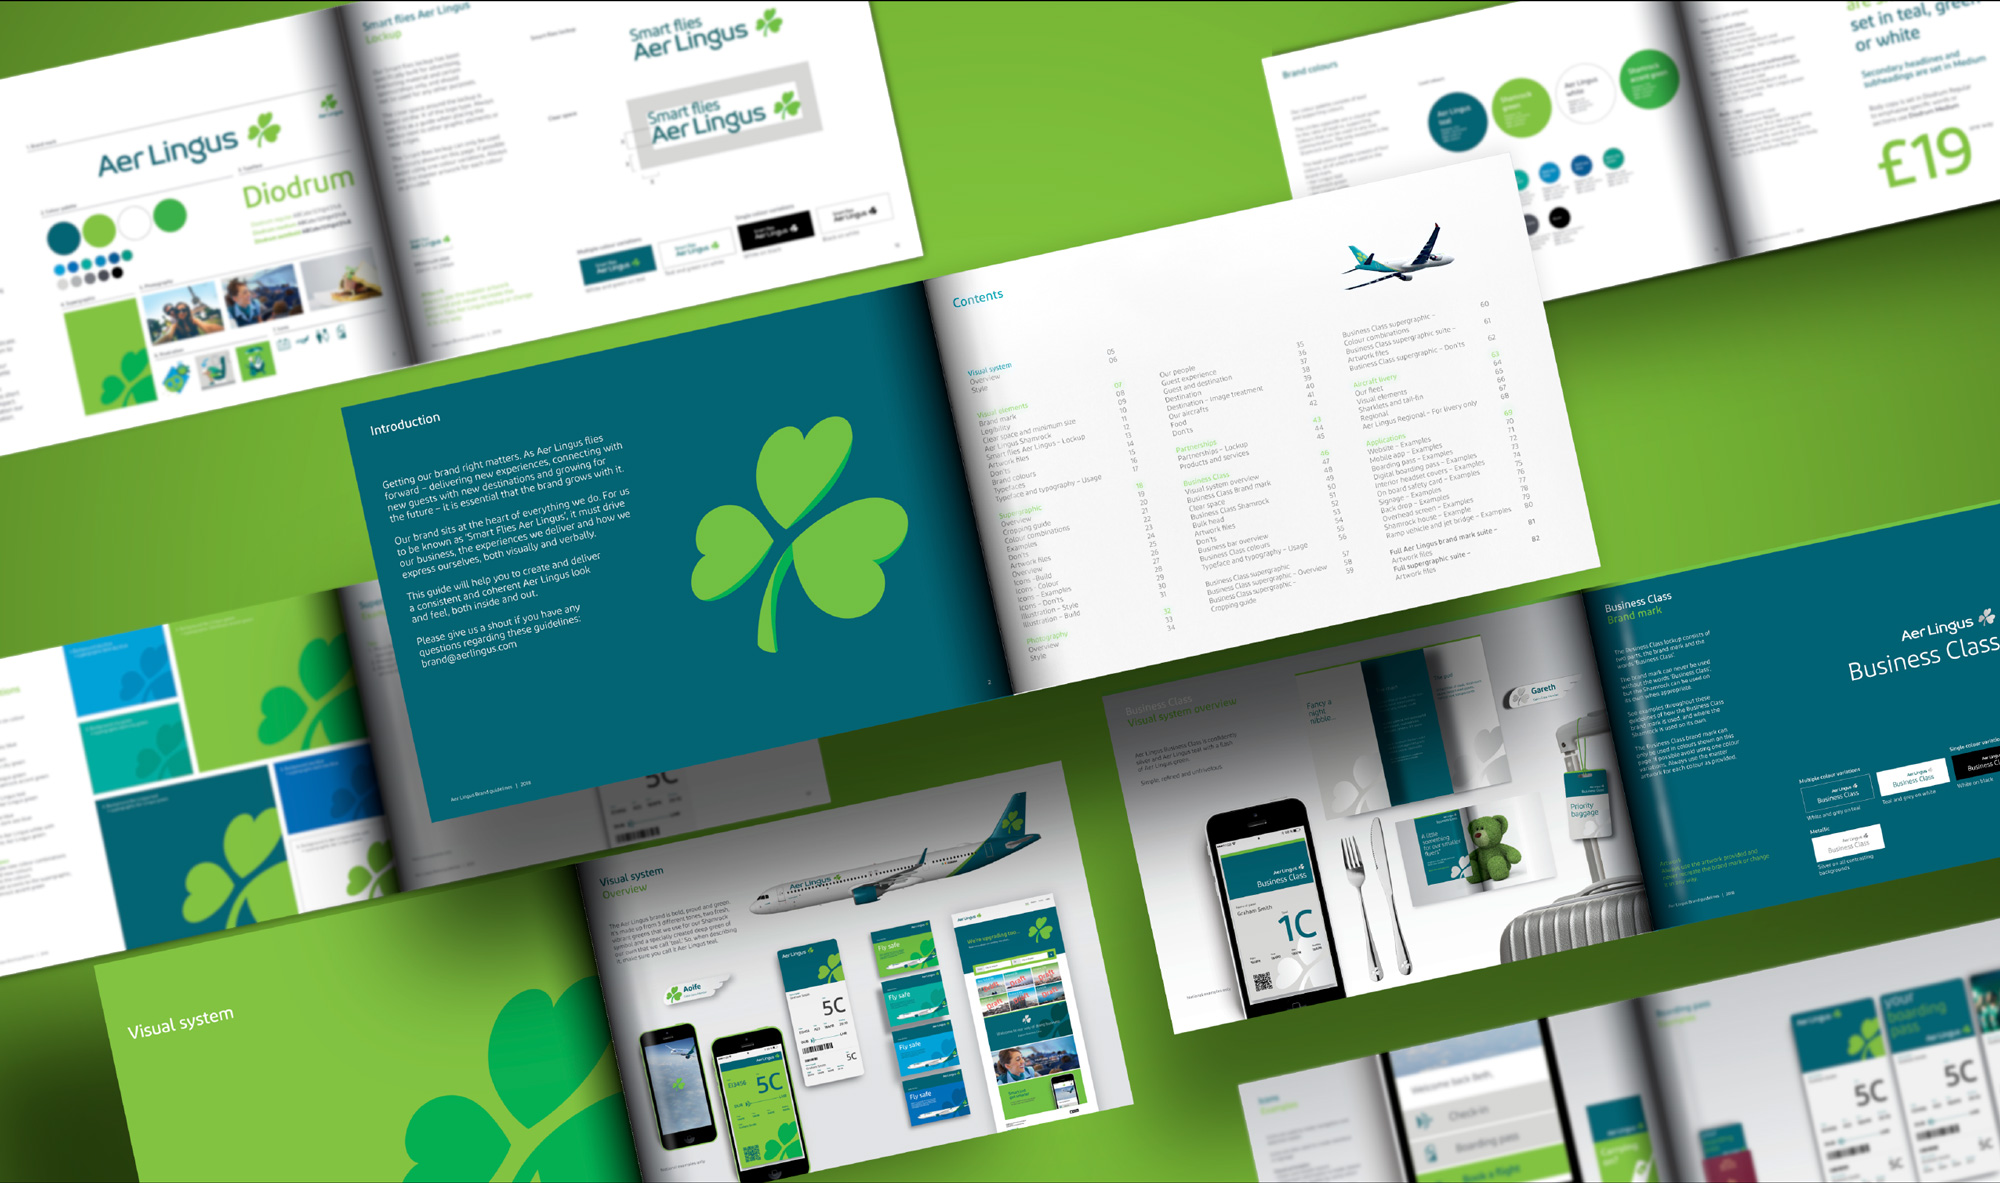 New Logo, Identity, and Livery for Aer Lingus by Lippincott